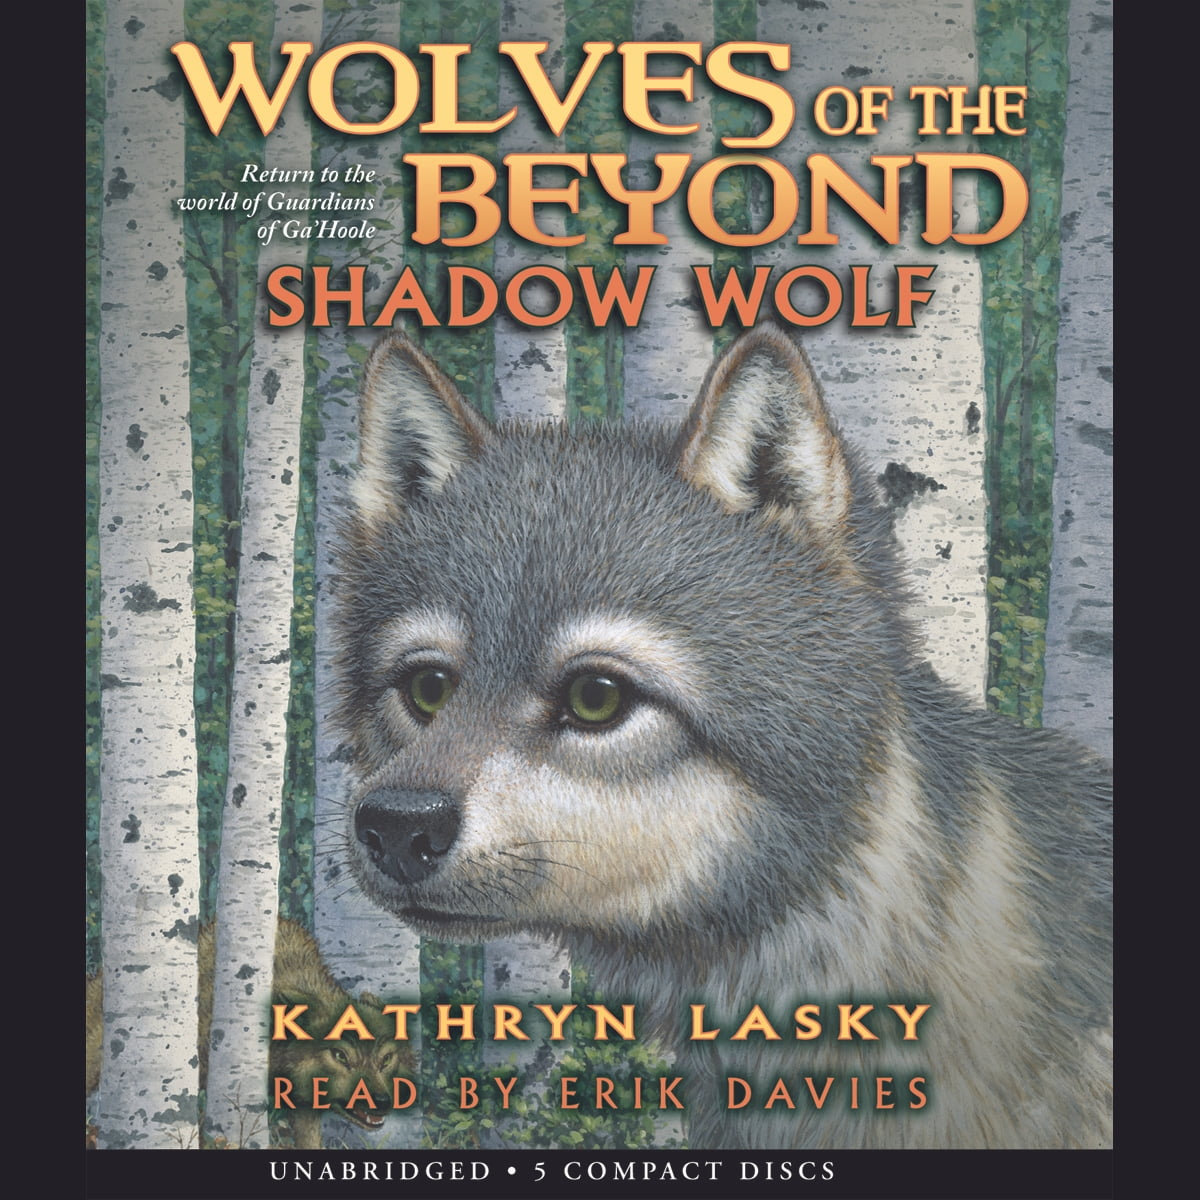 Wolves of the Beyond, Book #2: Shadow Wolf Audiobook by Kathryn Lasky -  9780545285377 | Rakuten Kobo